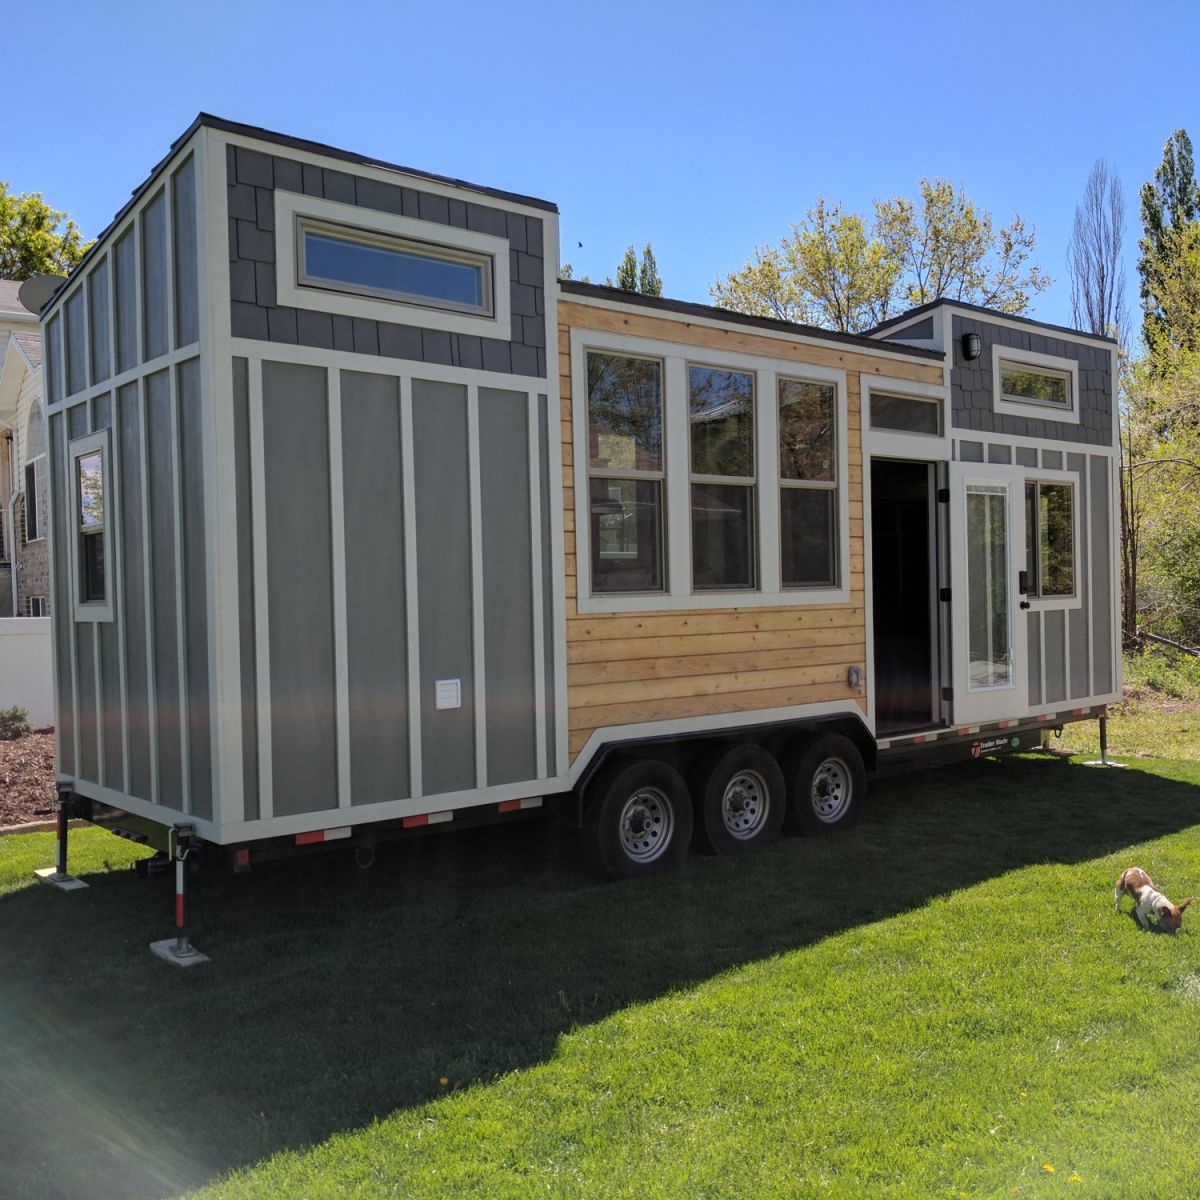 Tiny House For Sale In Ogden, Utah